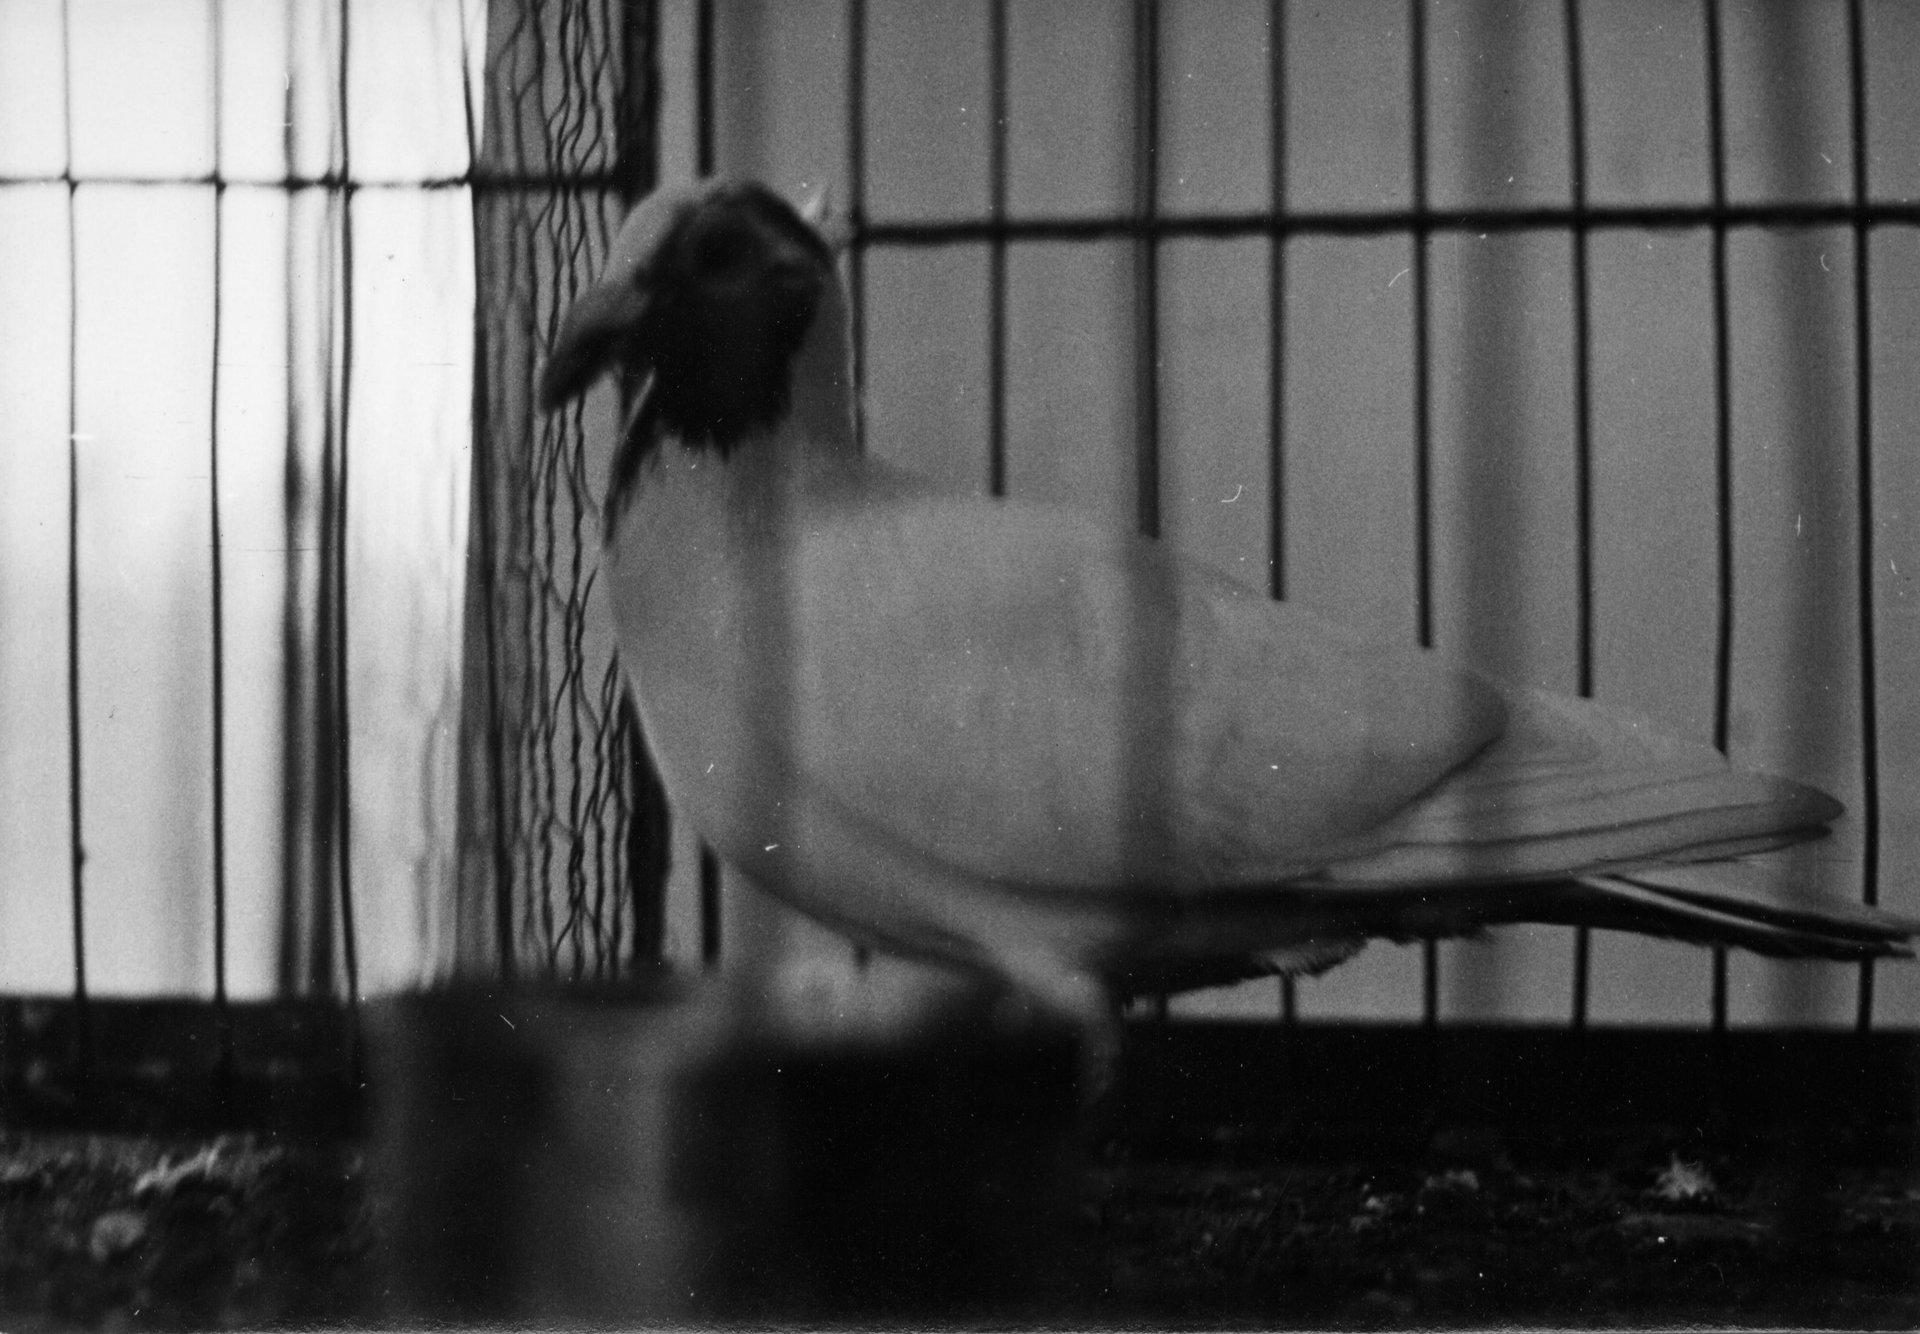 Petra Feriancová, Series Creator – From the Archive of O. Ferianc, New Breeds 1949-1952, 2008, (37/112)